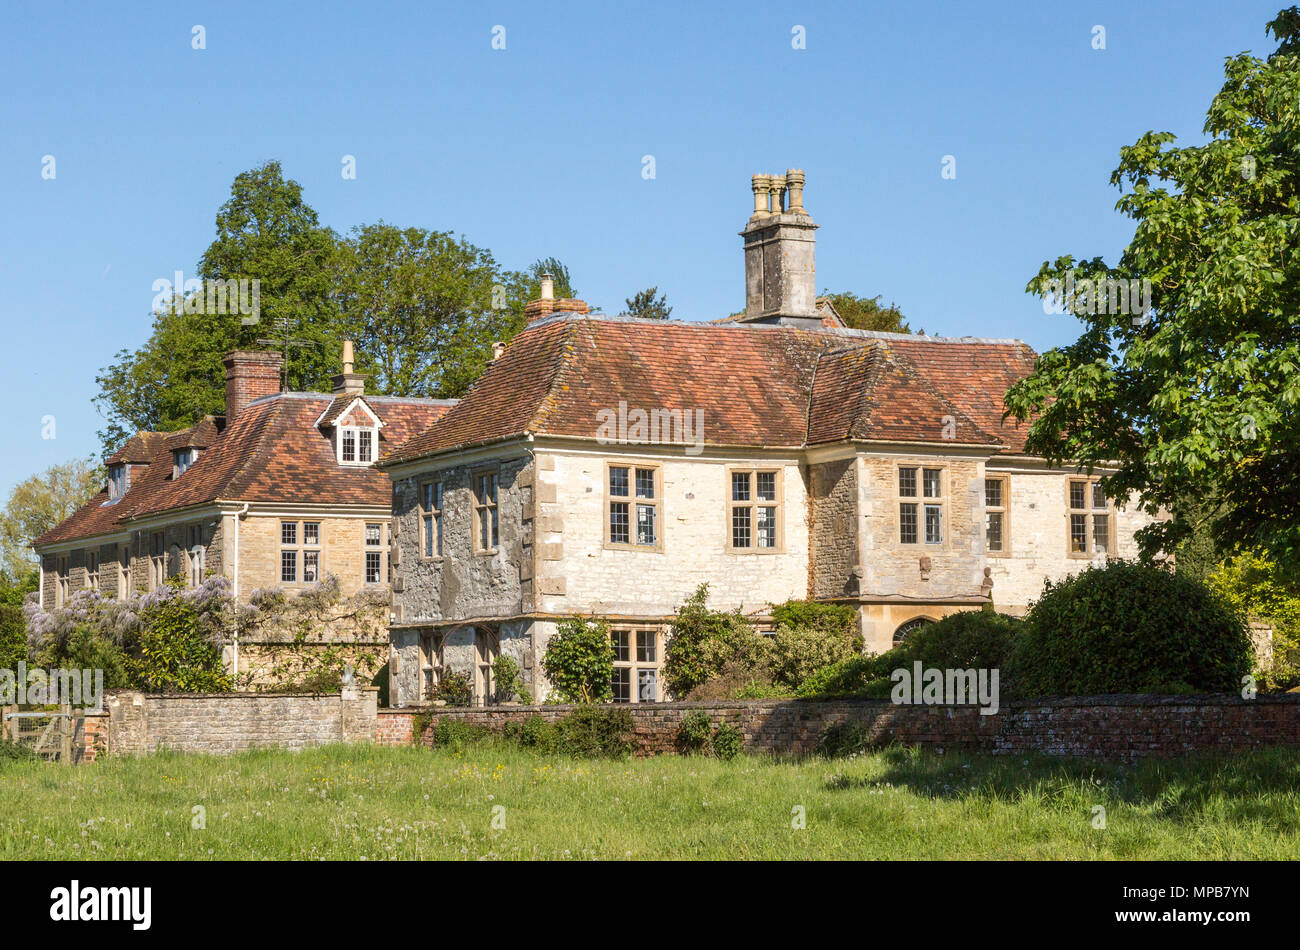 Large detached extended historic farmhouse built from chalk stone in village of Compton Bassett, Wiltshire, England, UK - Stock Image